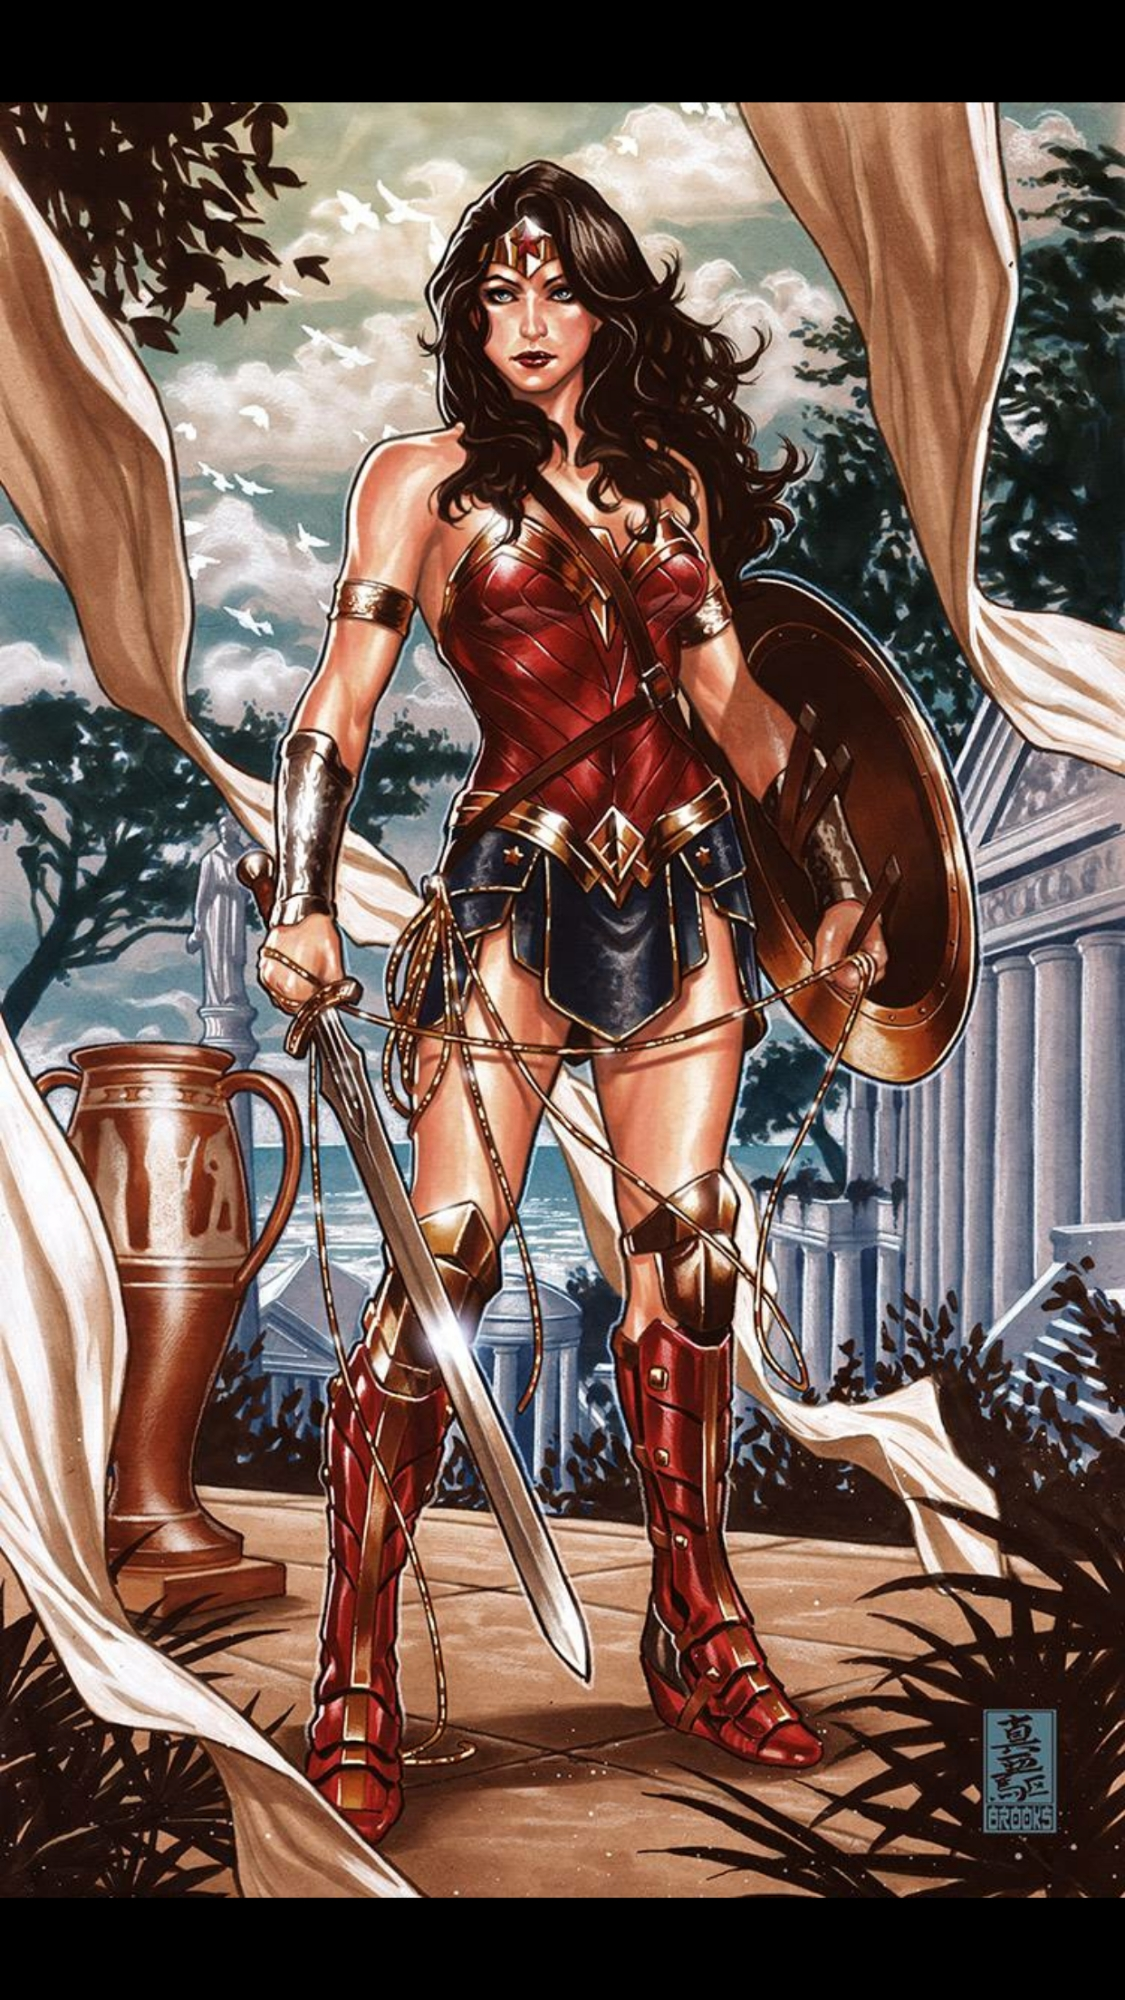 mark brooks wonder woman jl 1 variant cover in naqam